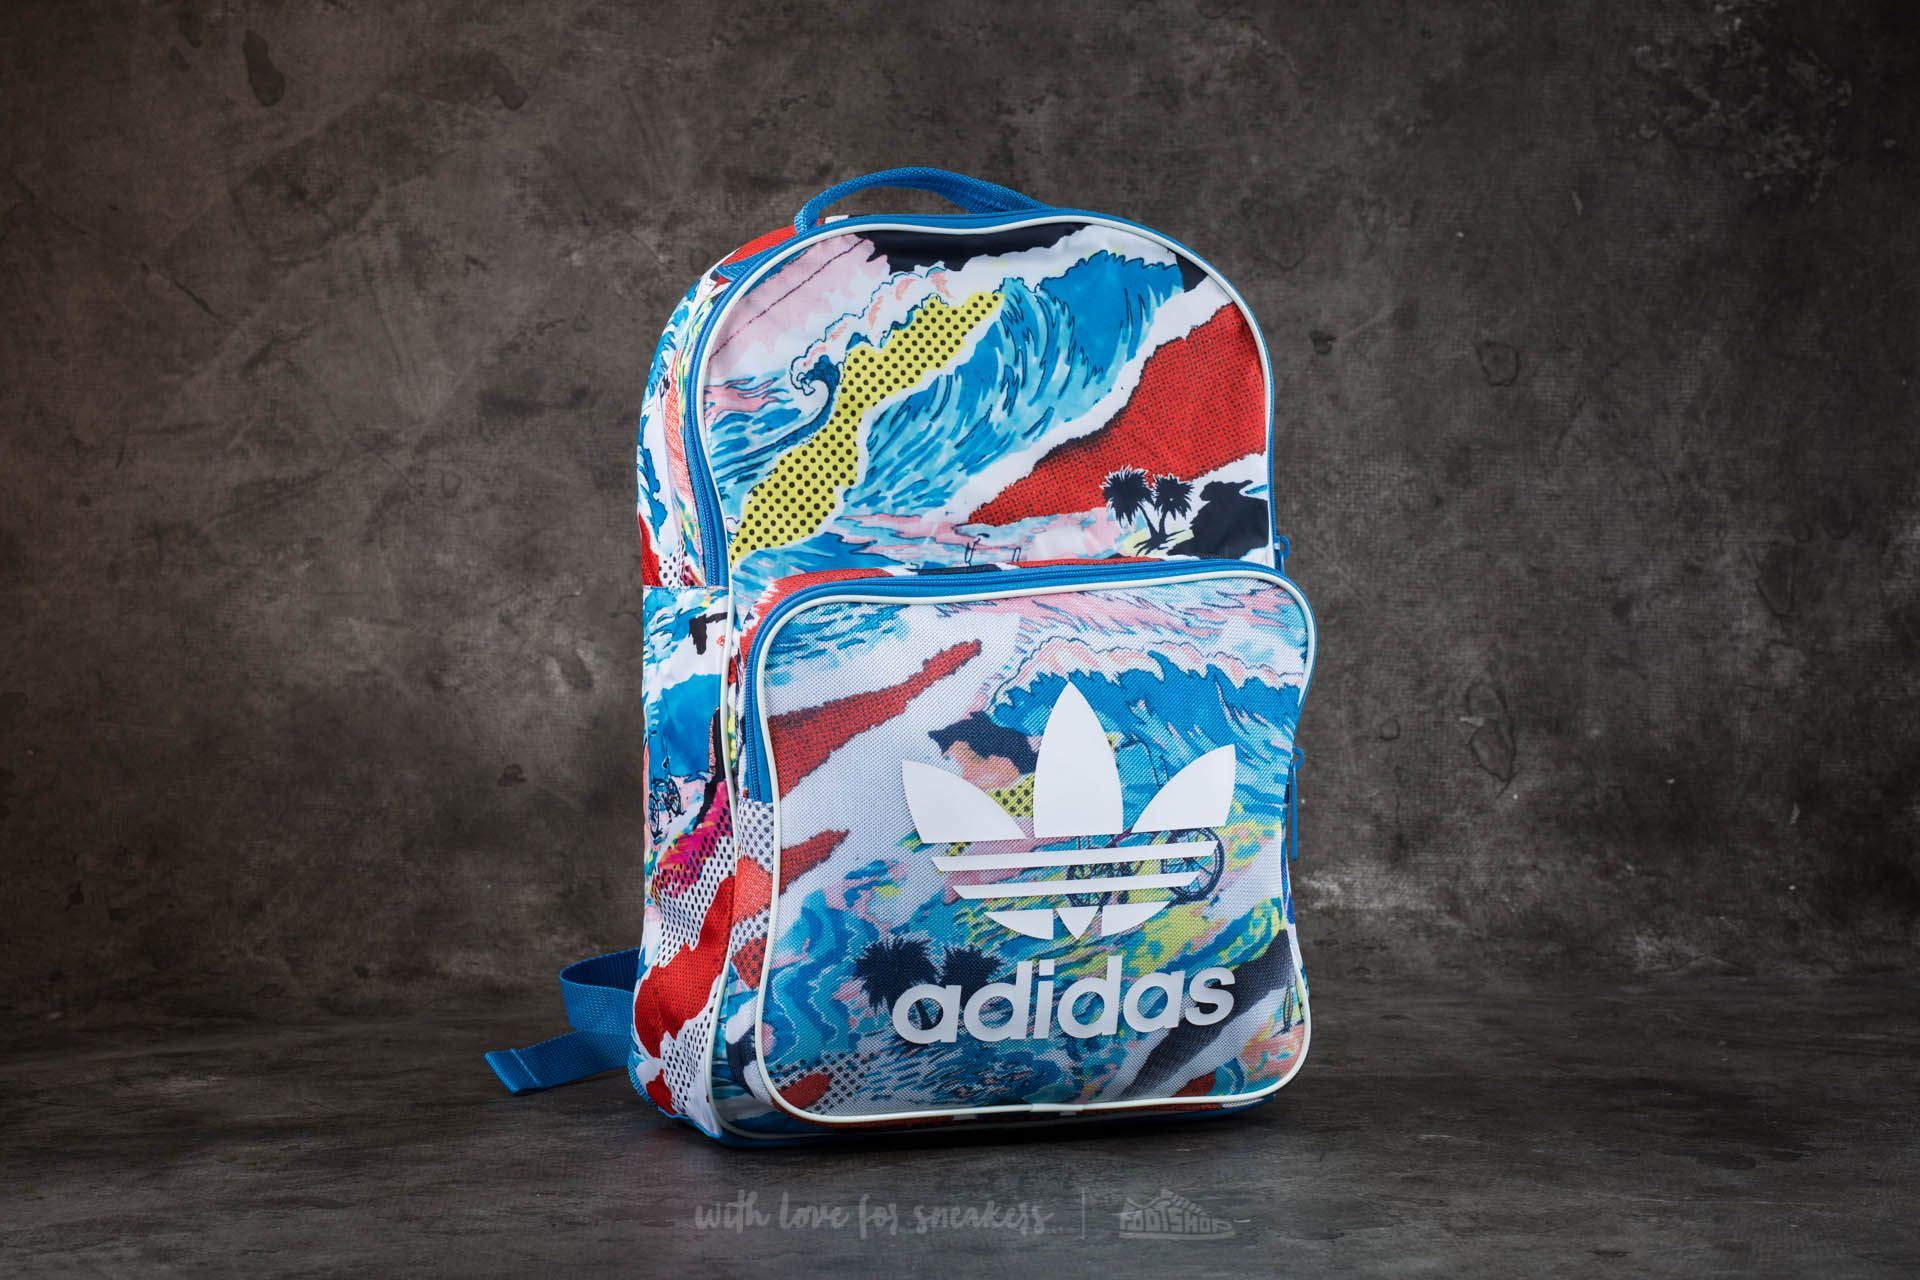 adidas Classic Backpack Multicolor - 16610